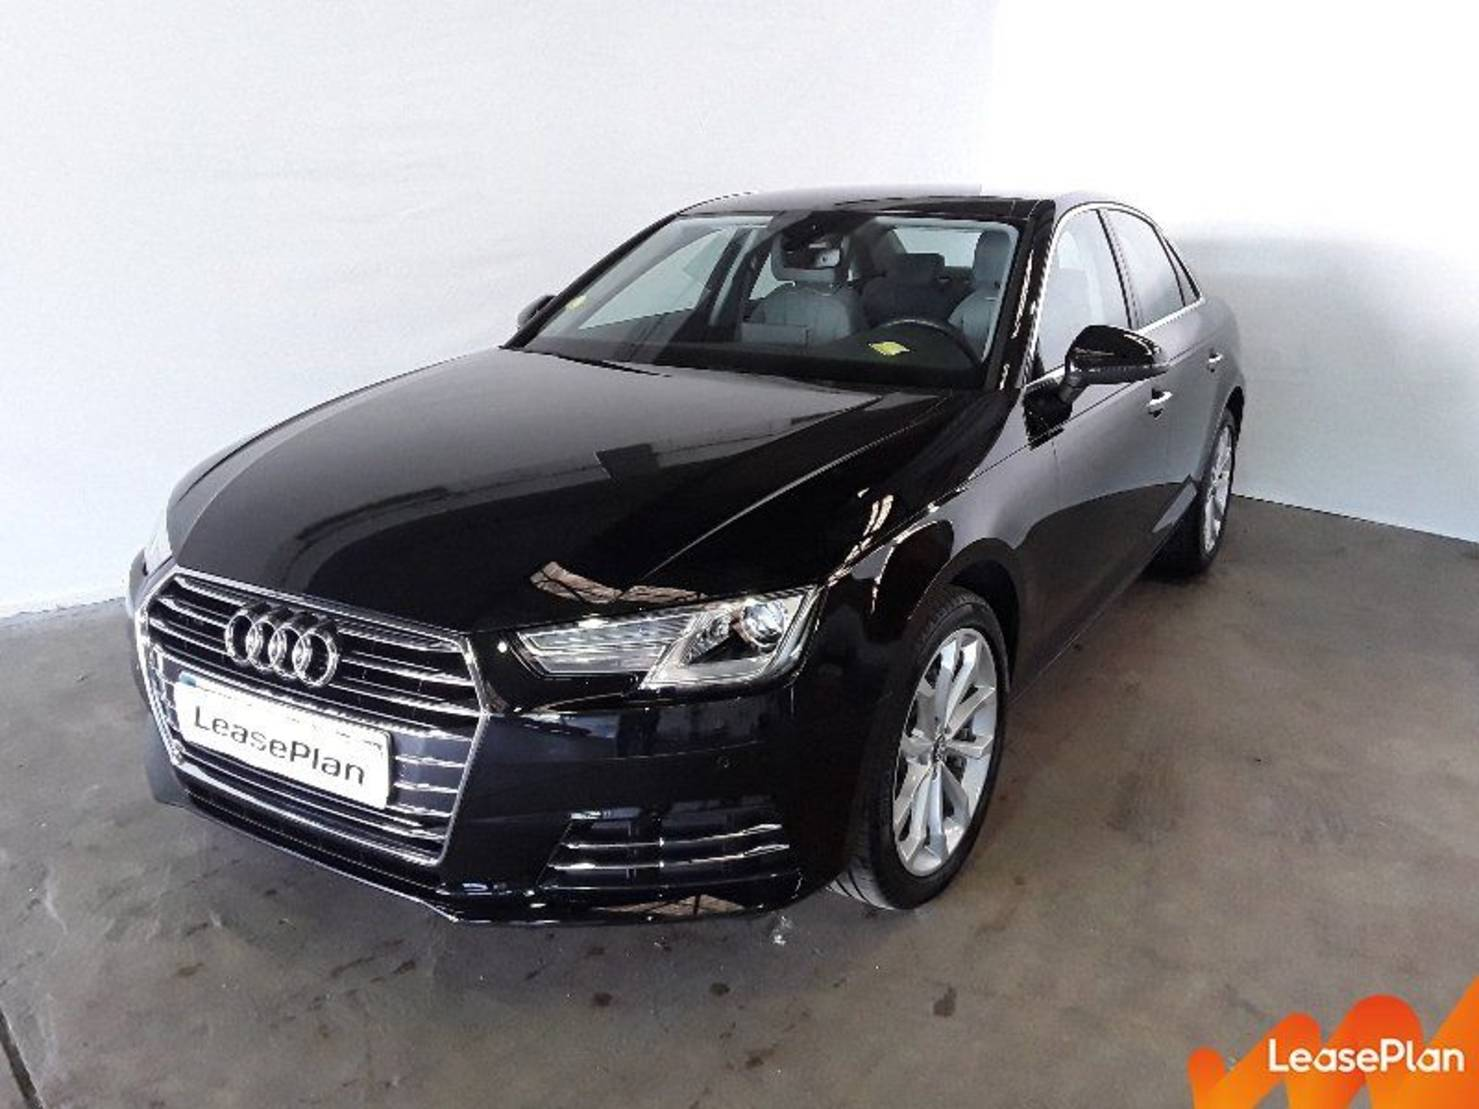 Audi A4 2.0 TDI 150 S tronic 7, Design Luxe detail1